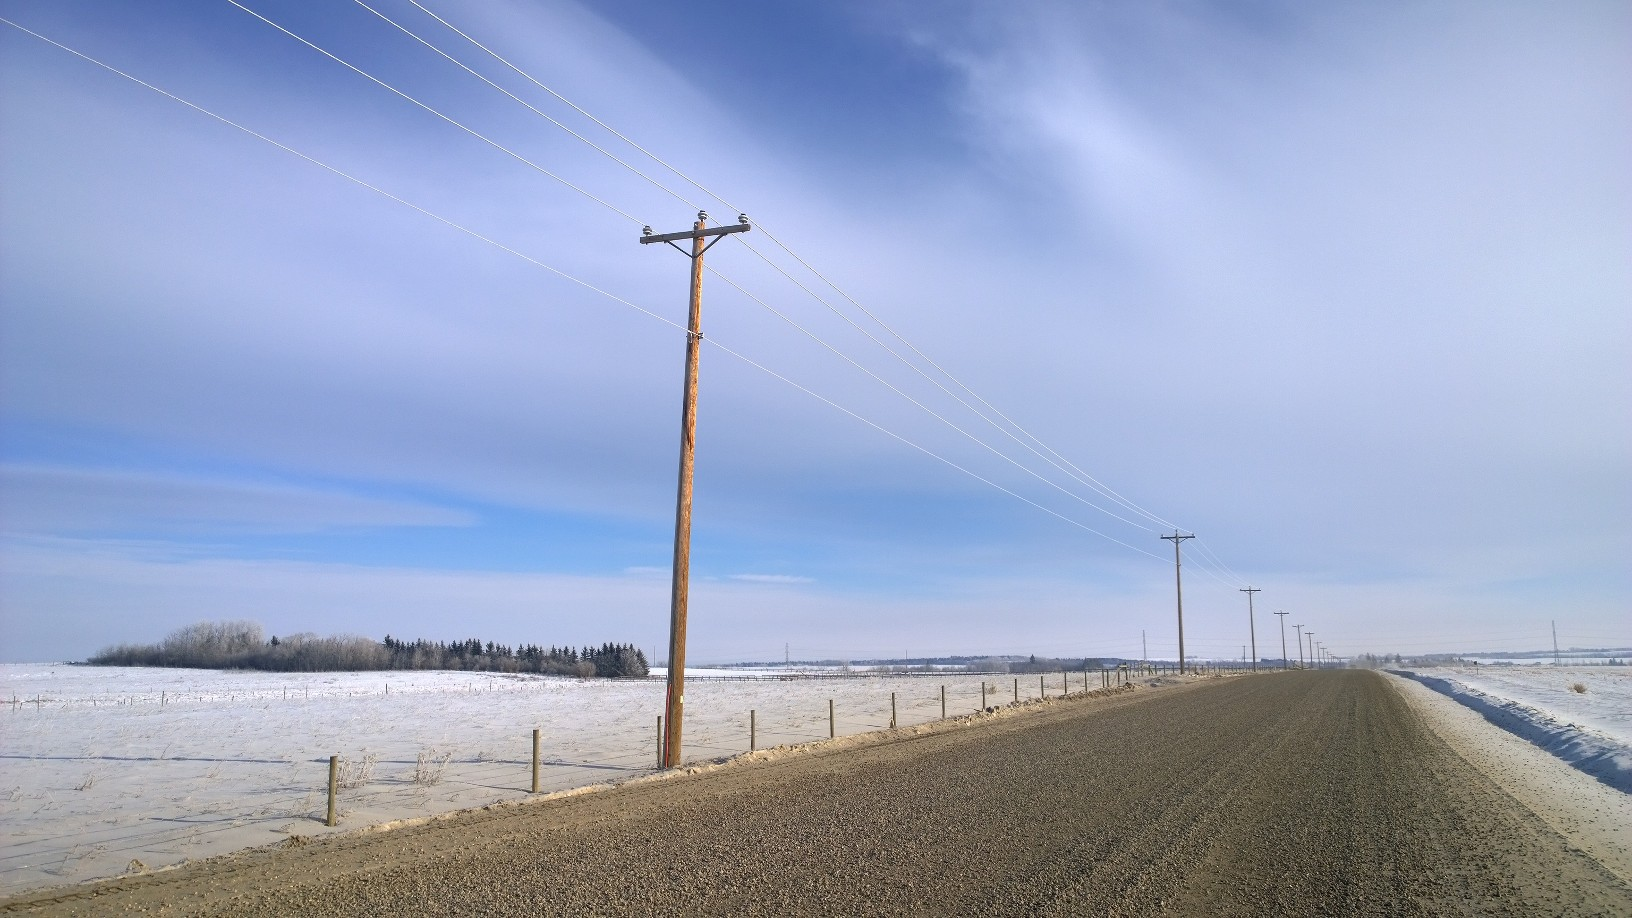 Rural road and power lines